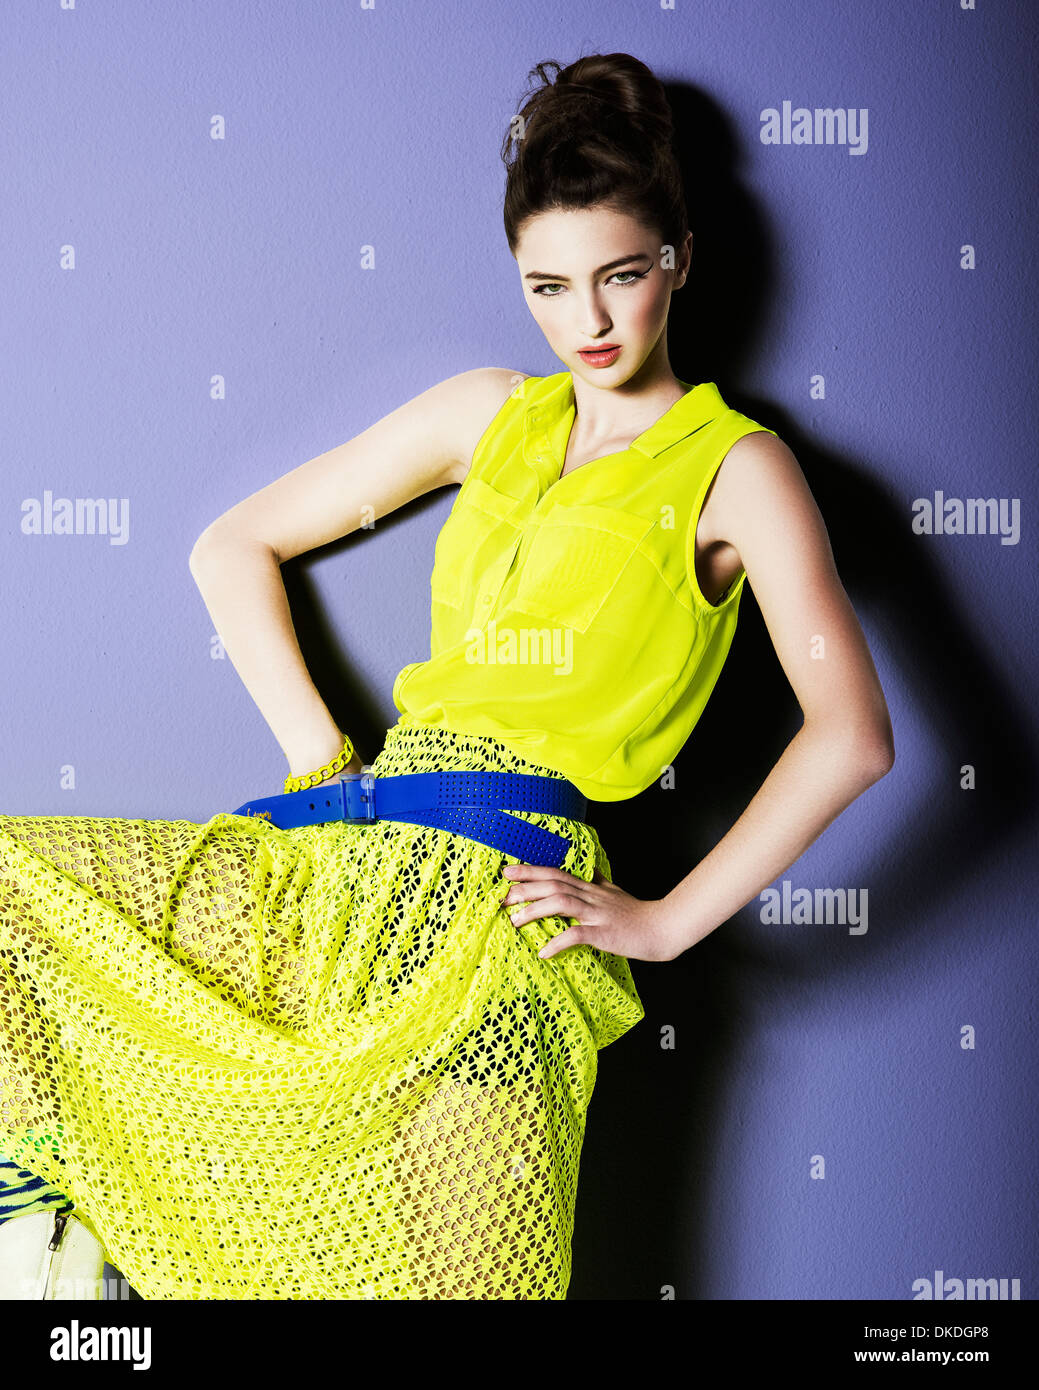 young teenager posing in a yellow dress - Stock Image